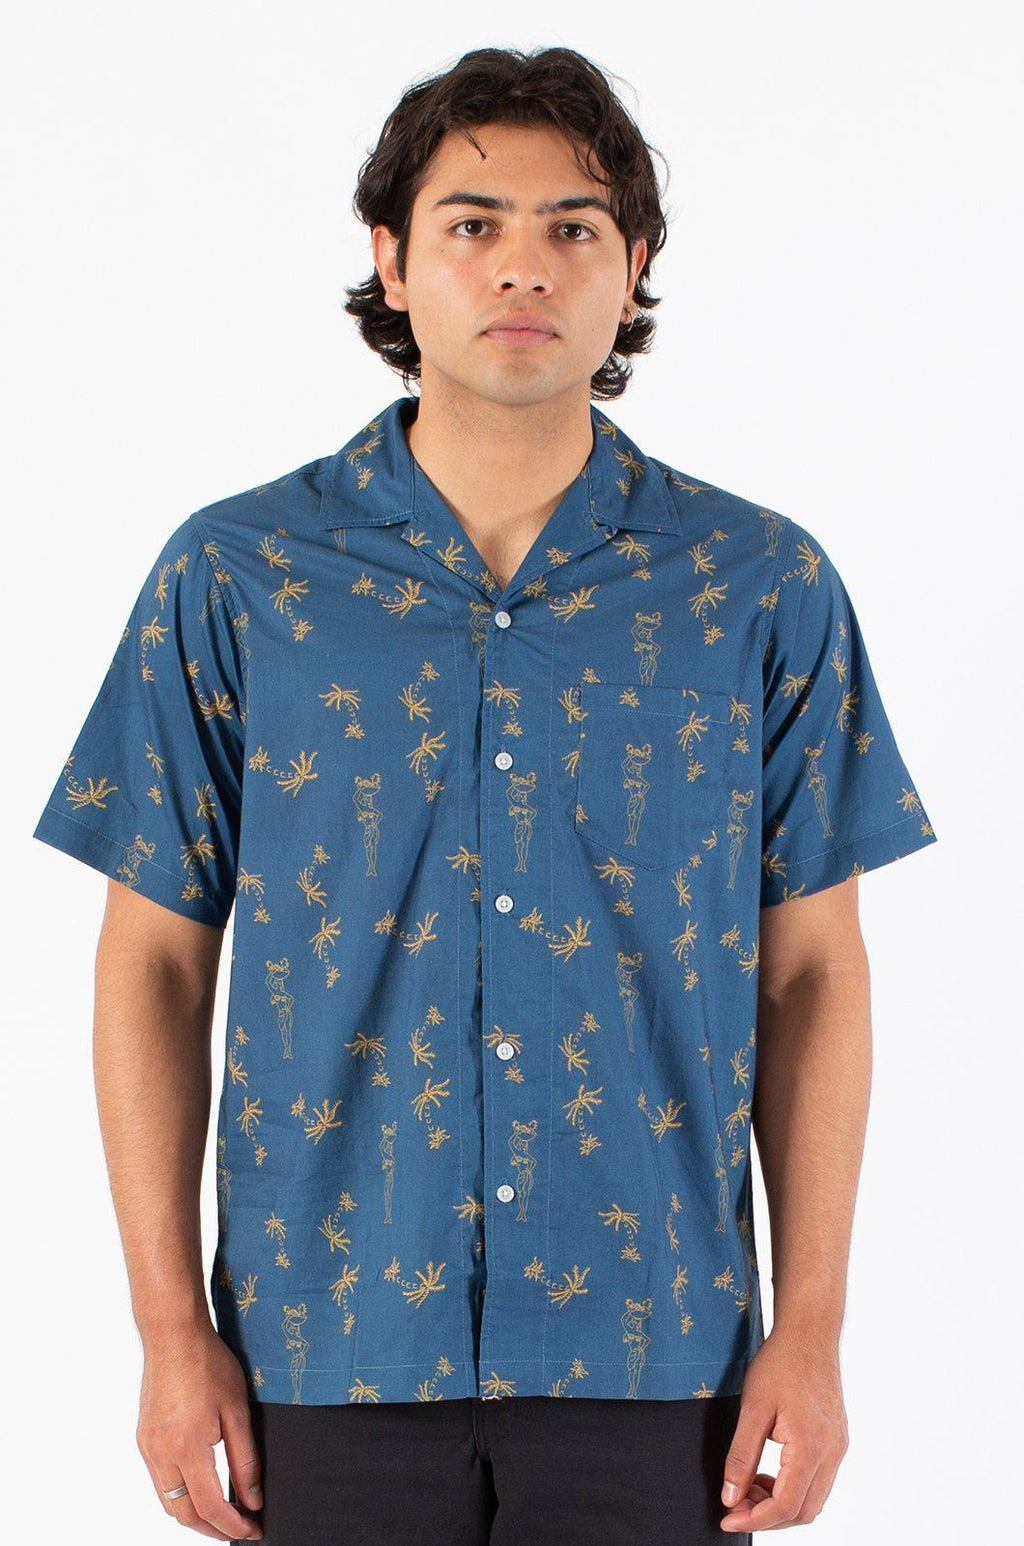 Siren Camp Shirts ambsn NAVY XS